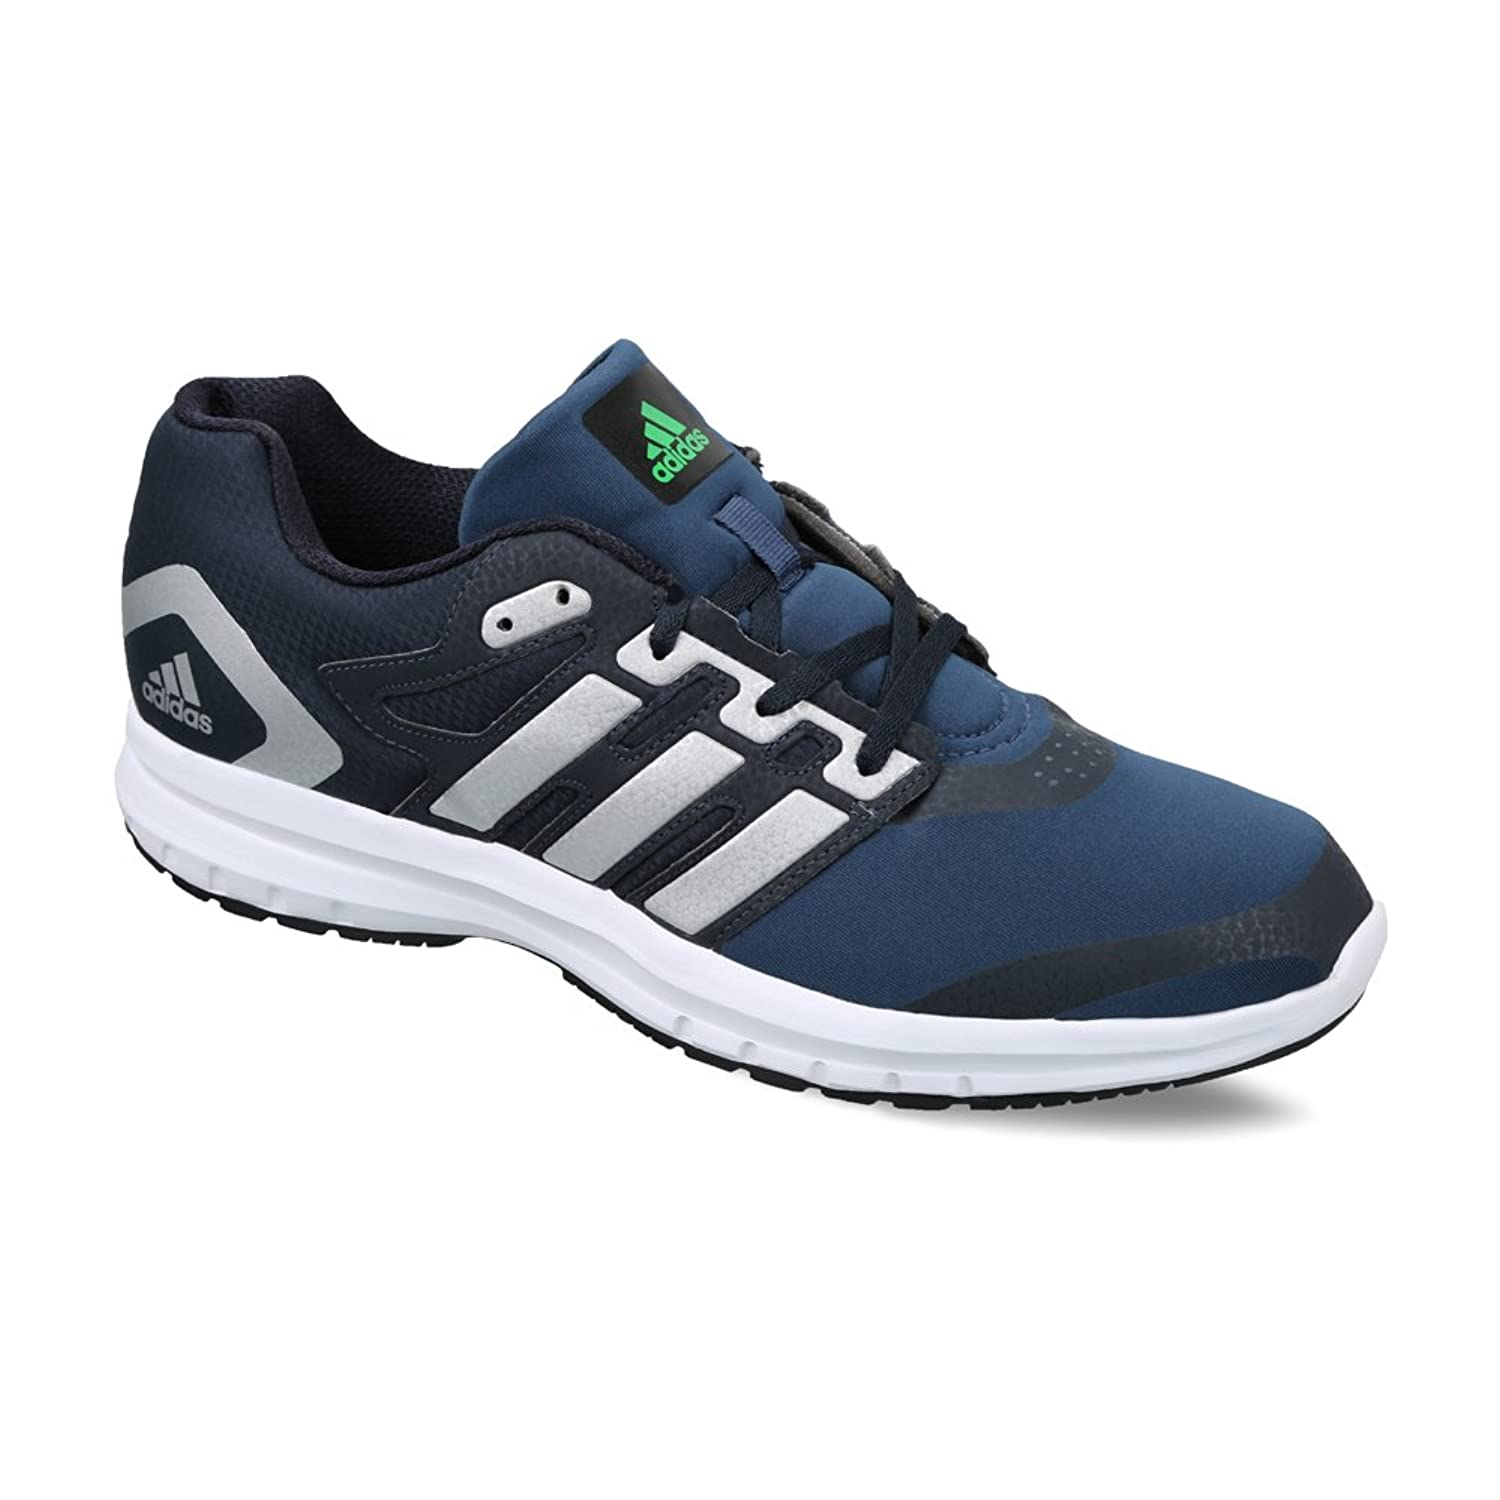 adidas shoes models with price